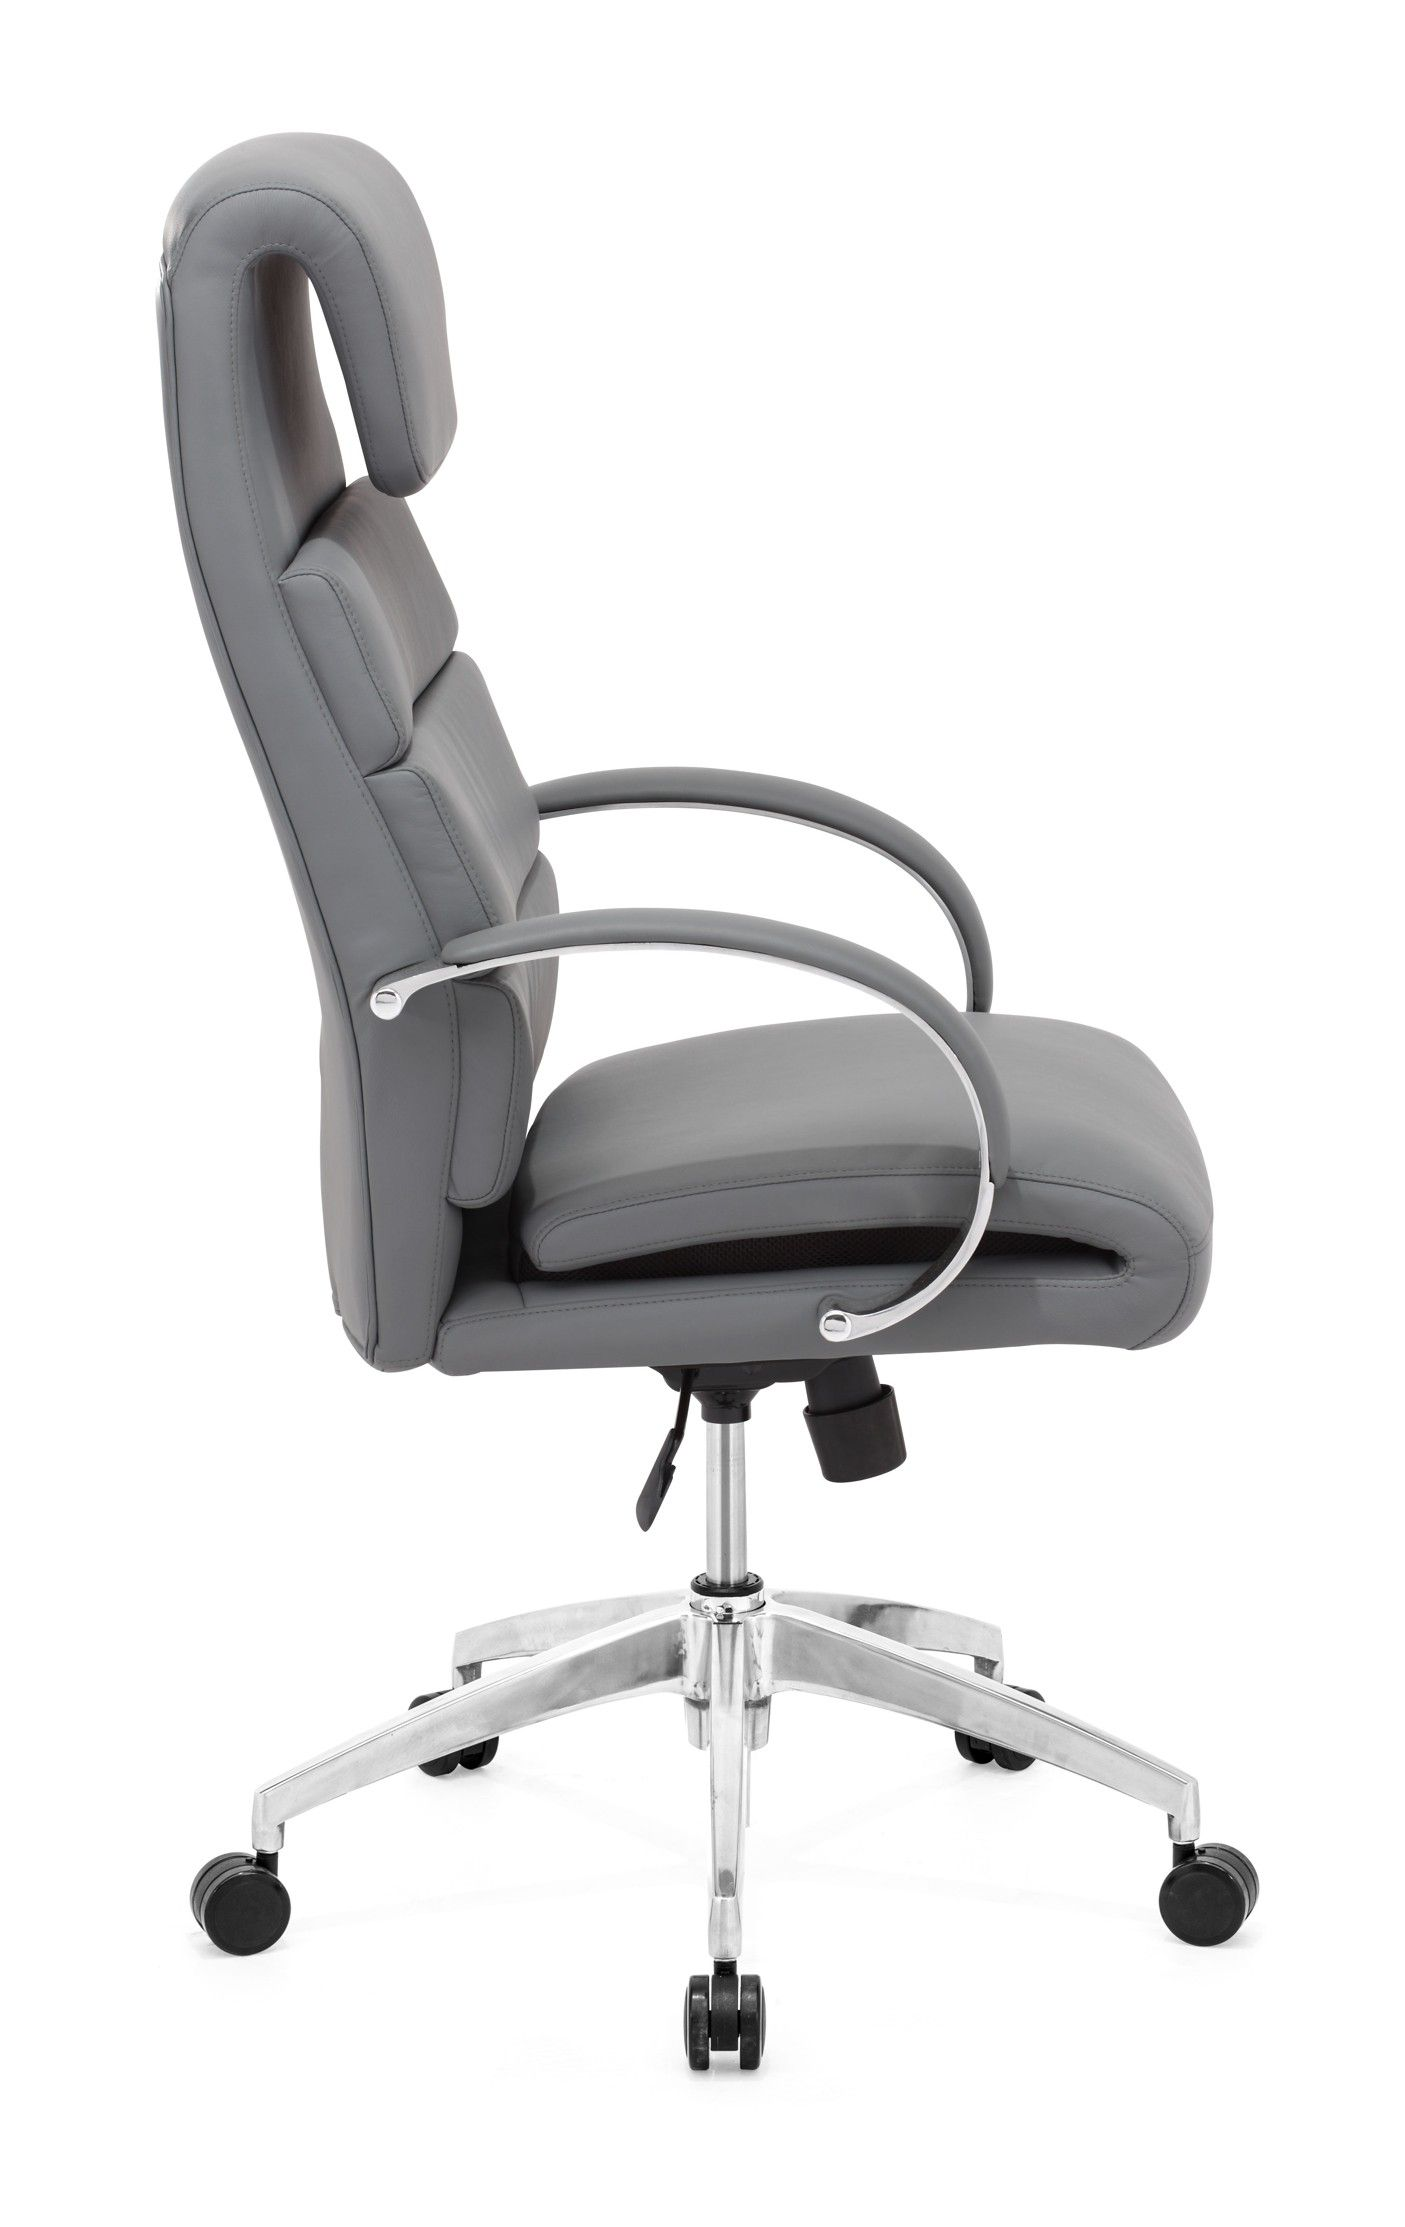 Awesome Epic Grey Office Chair On Home Decor Ideas With Grey - Grey office chair